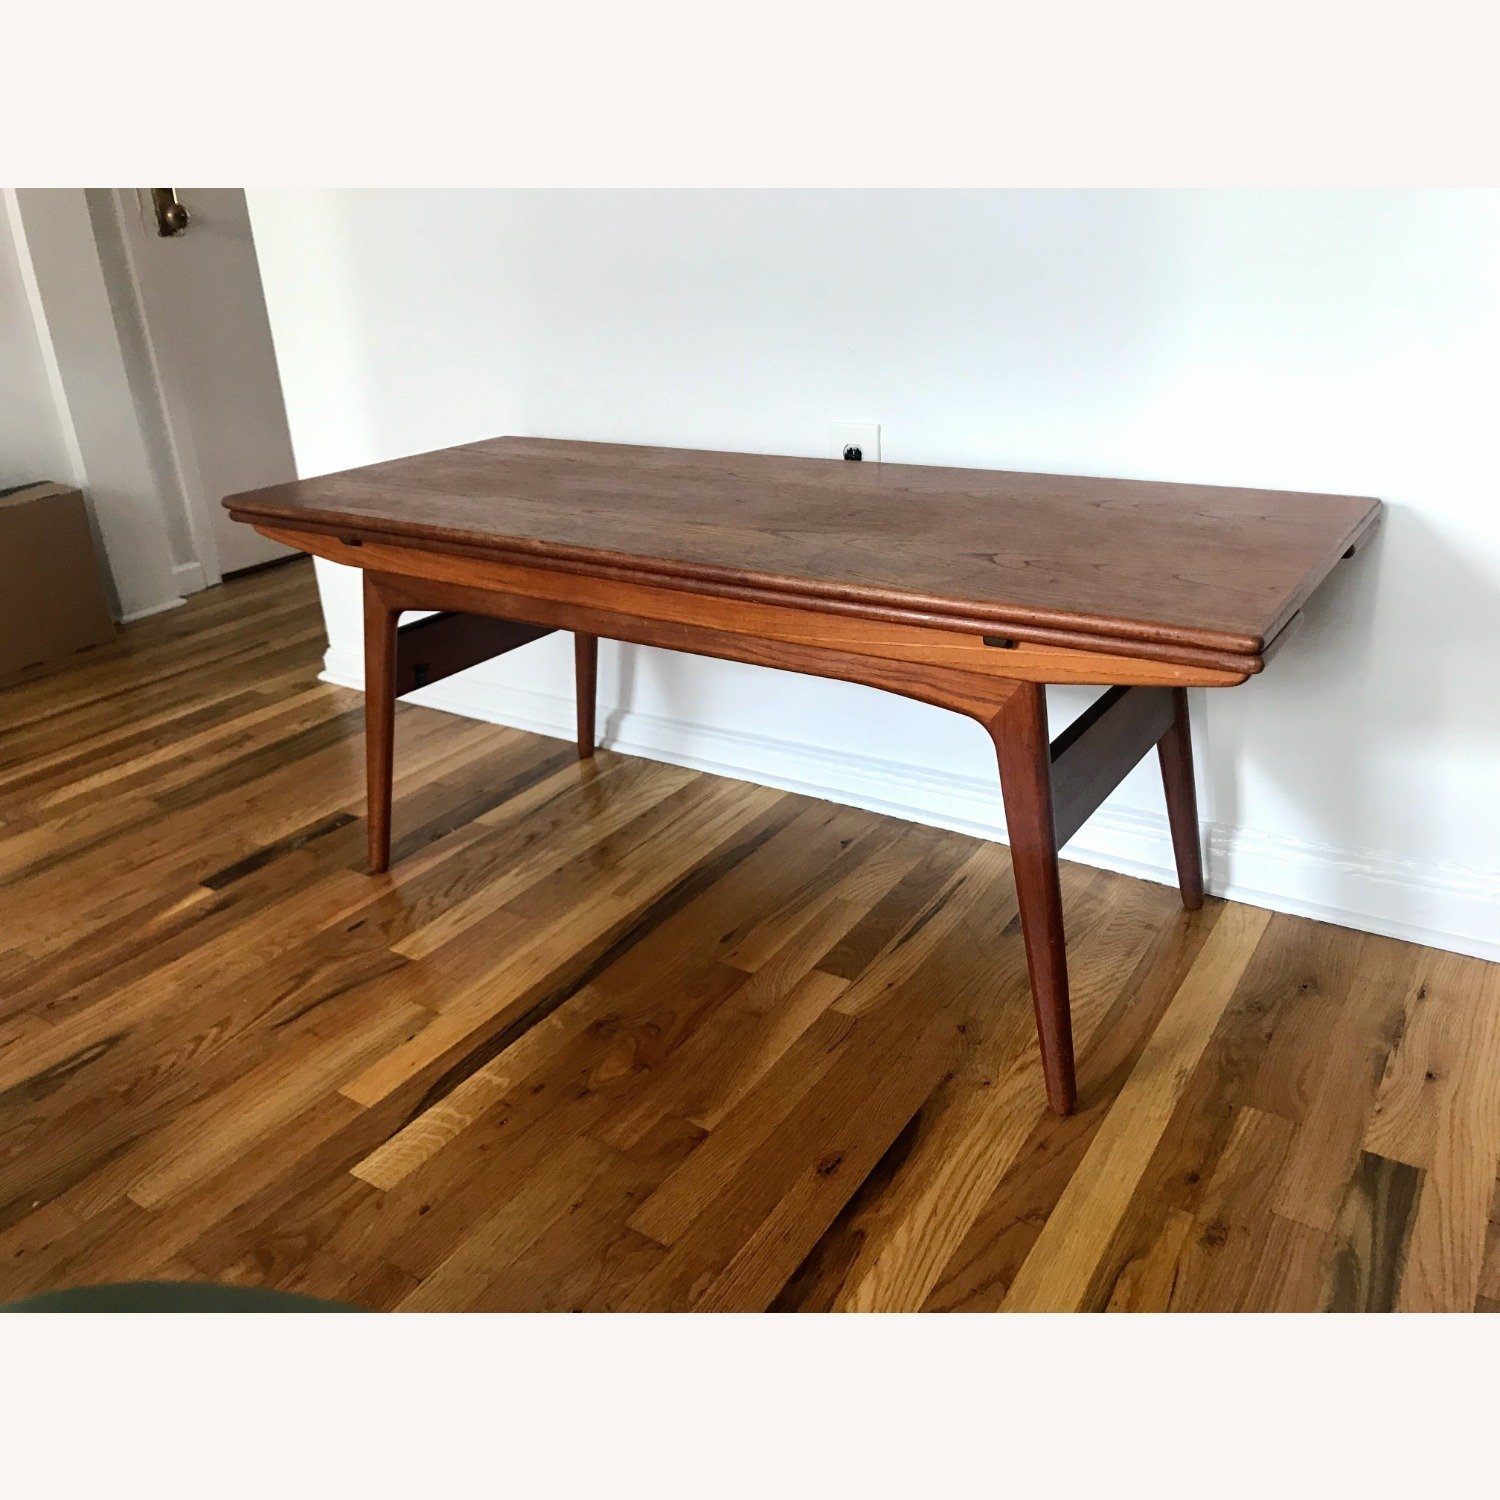 Metamorphic Danish Modern Coffee / Work Table - image-1